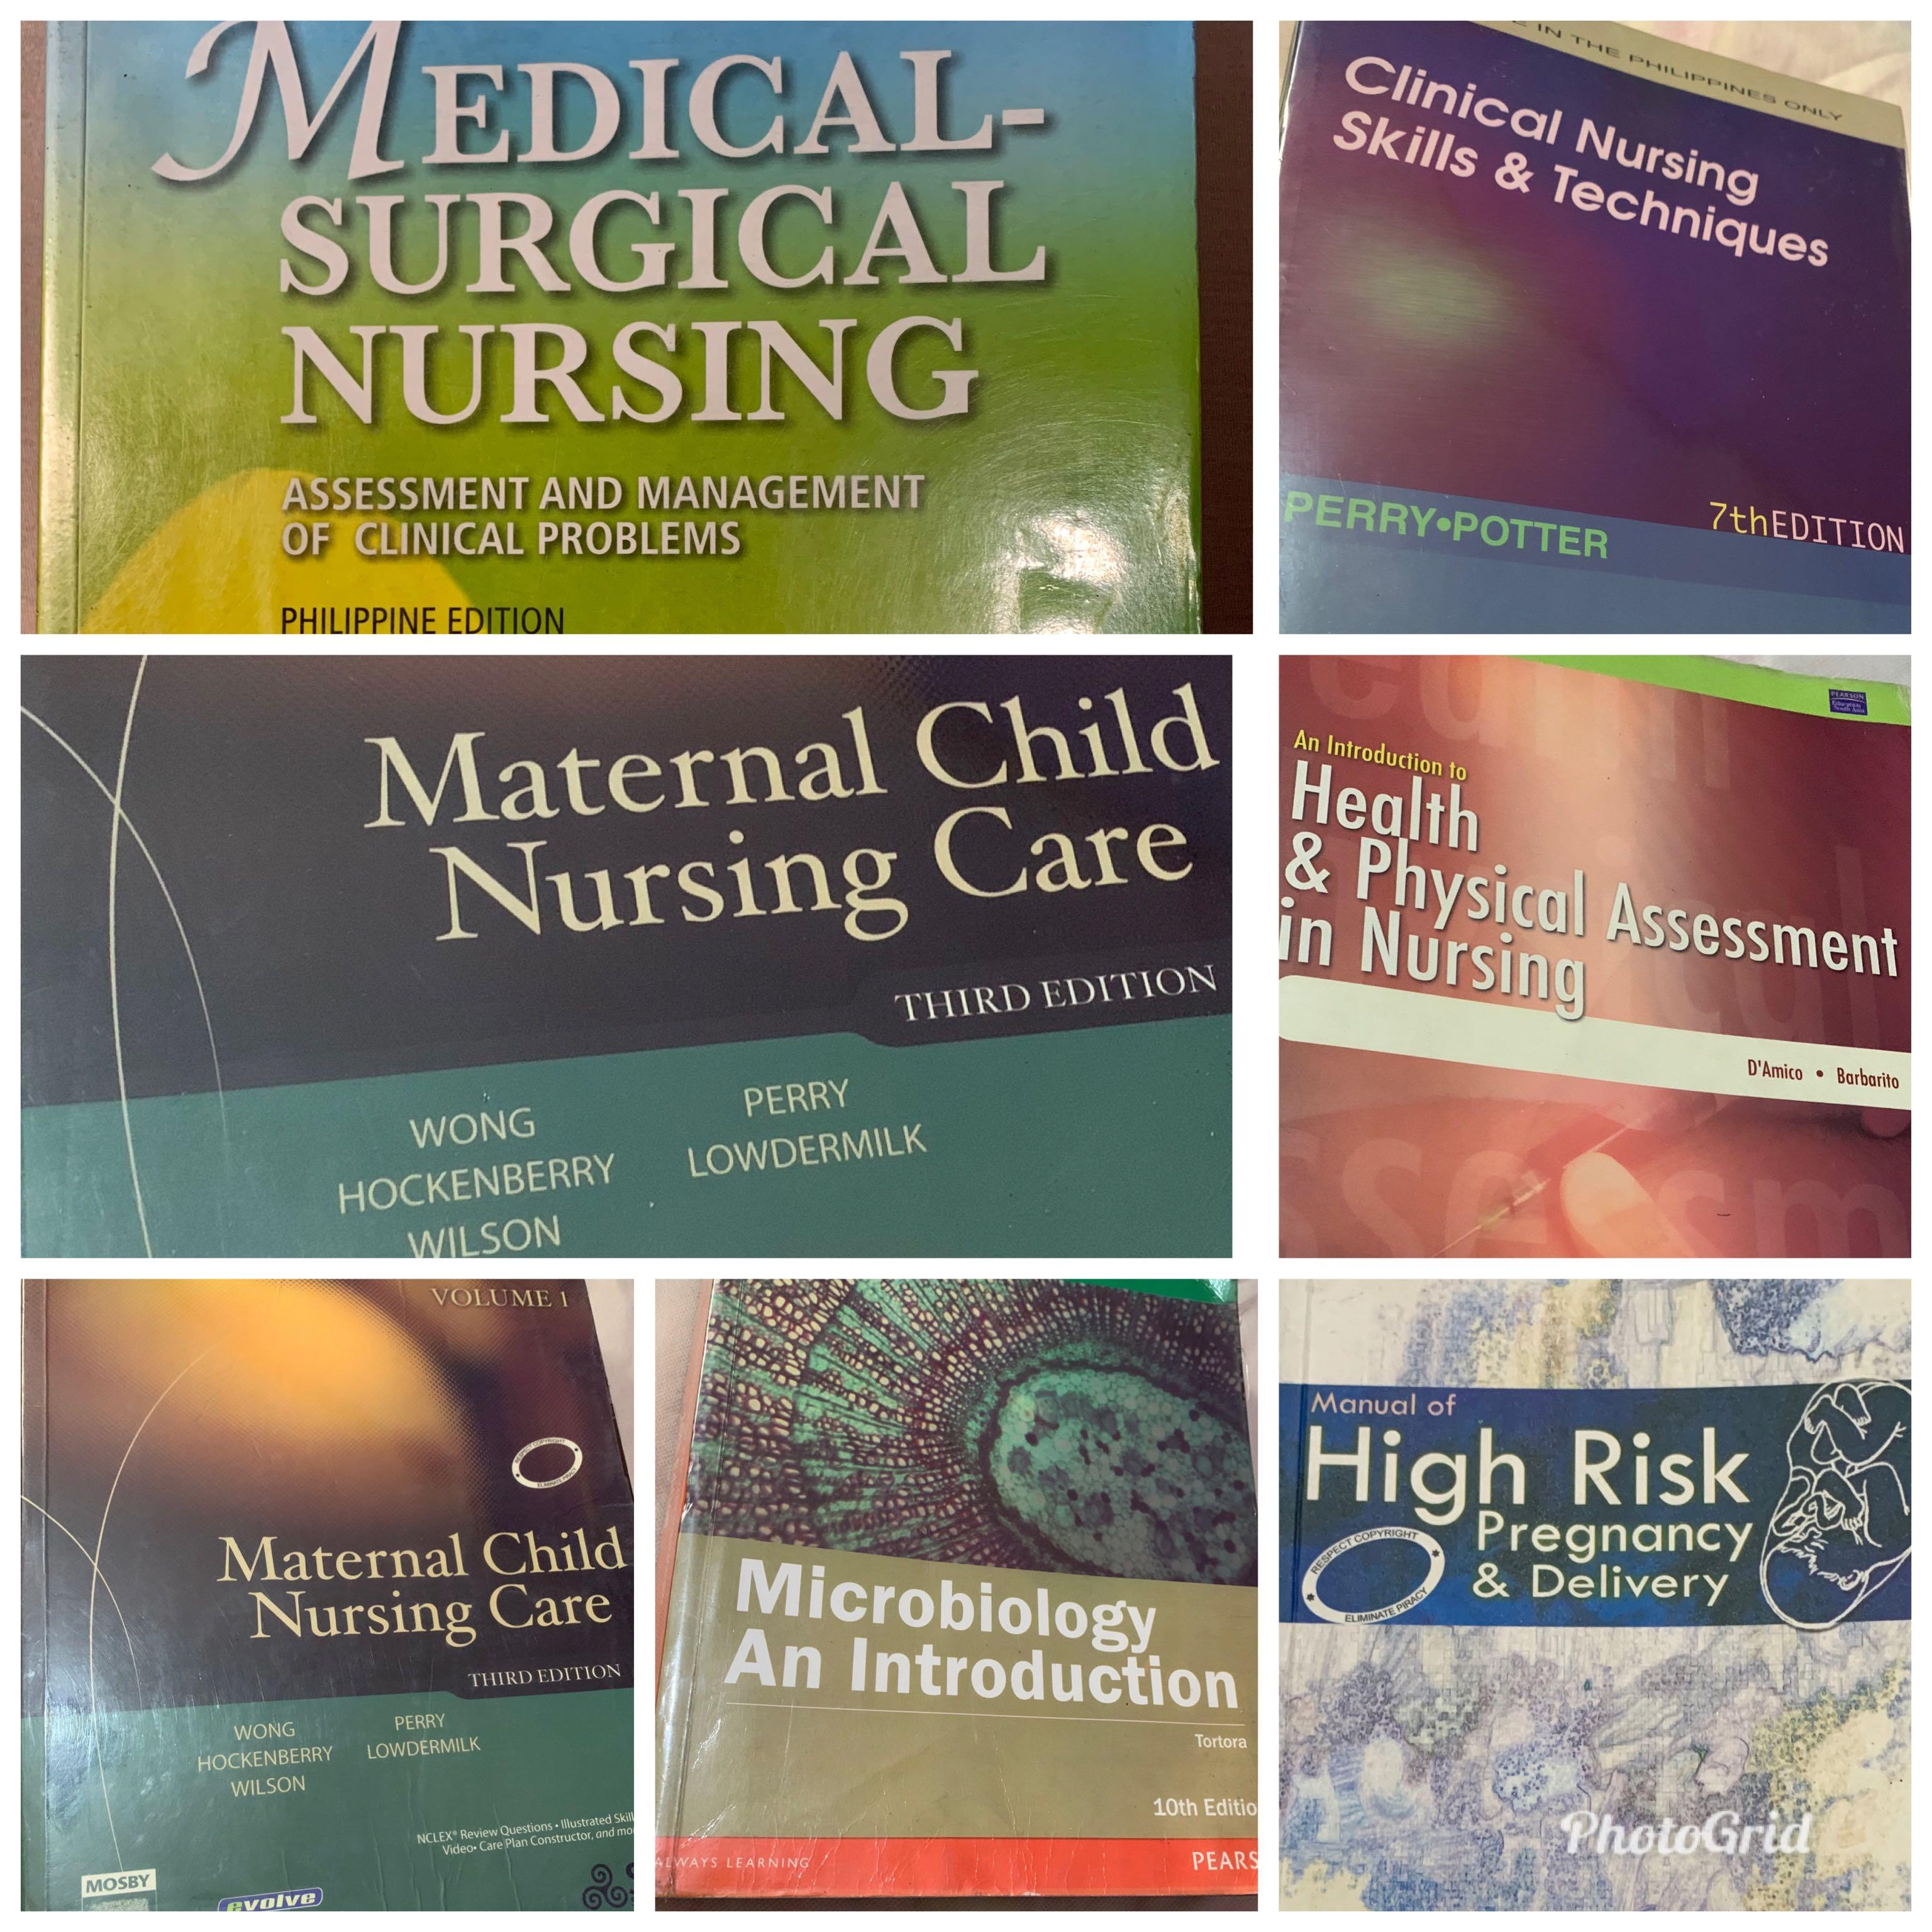 NURSING BOOKS FOR Php150-400 |  UST NURSING |CHEAP | IN GREAT CONDITION! RESPONSIVE AND ASAP SHIPPING